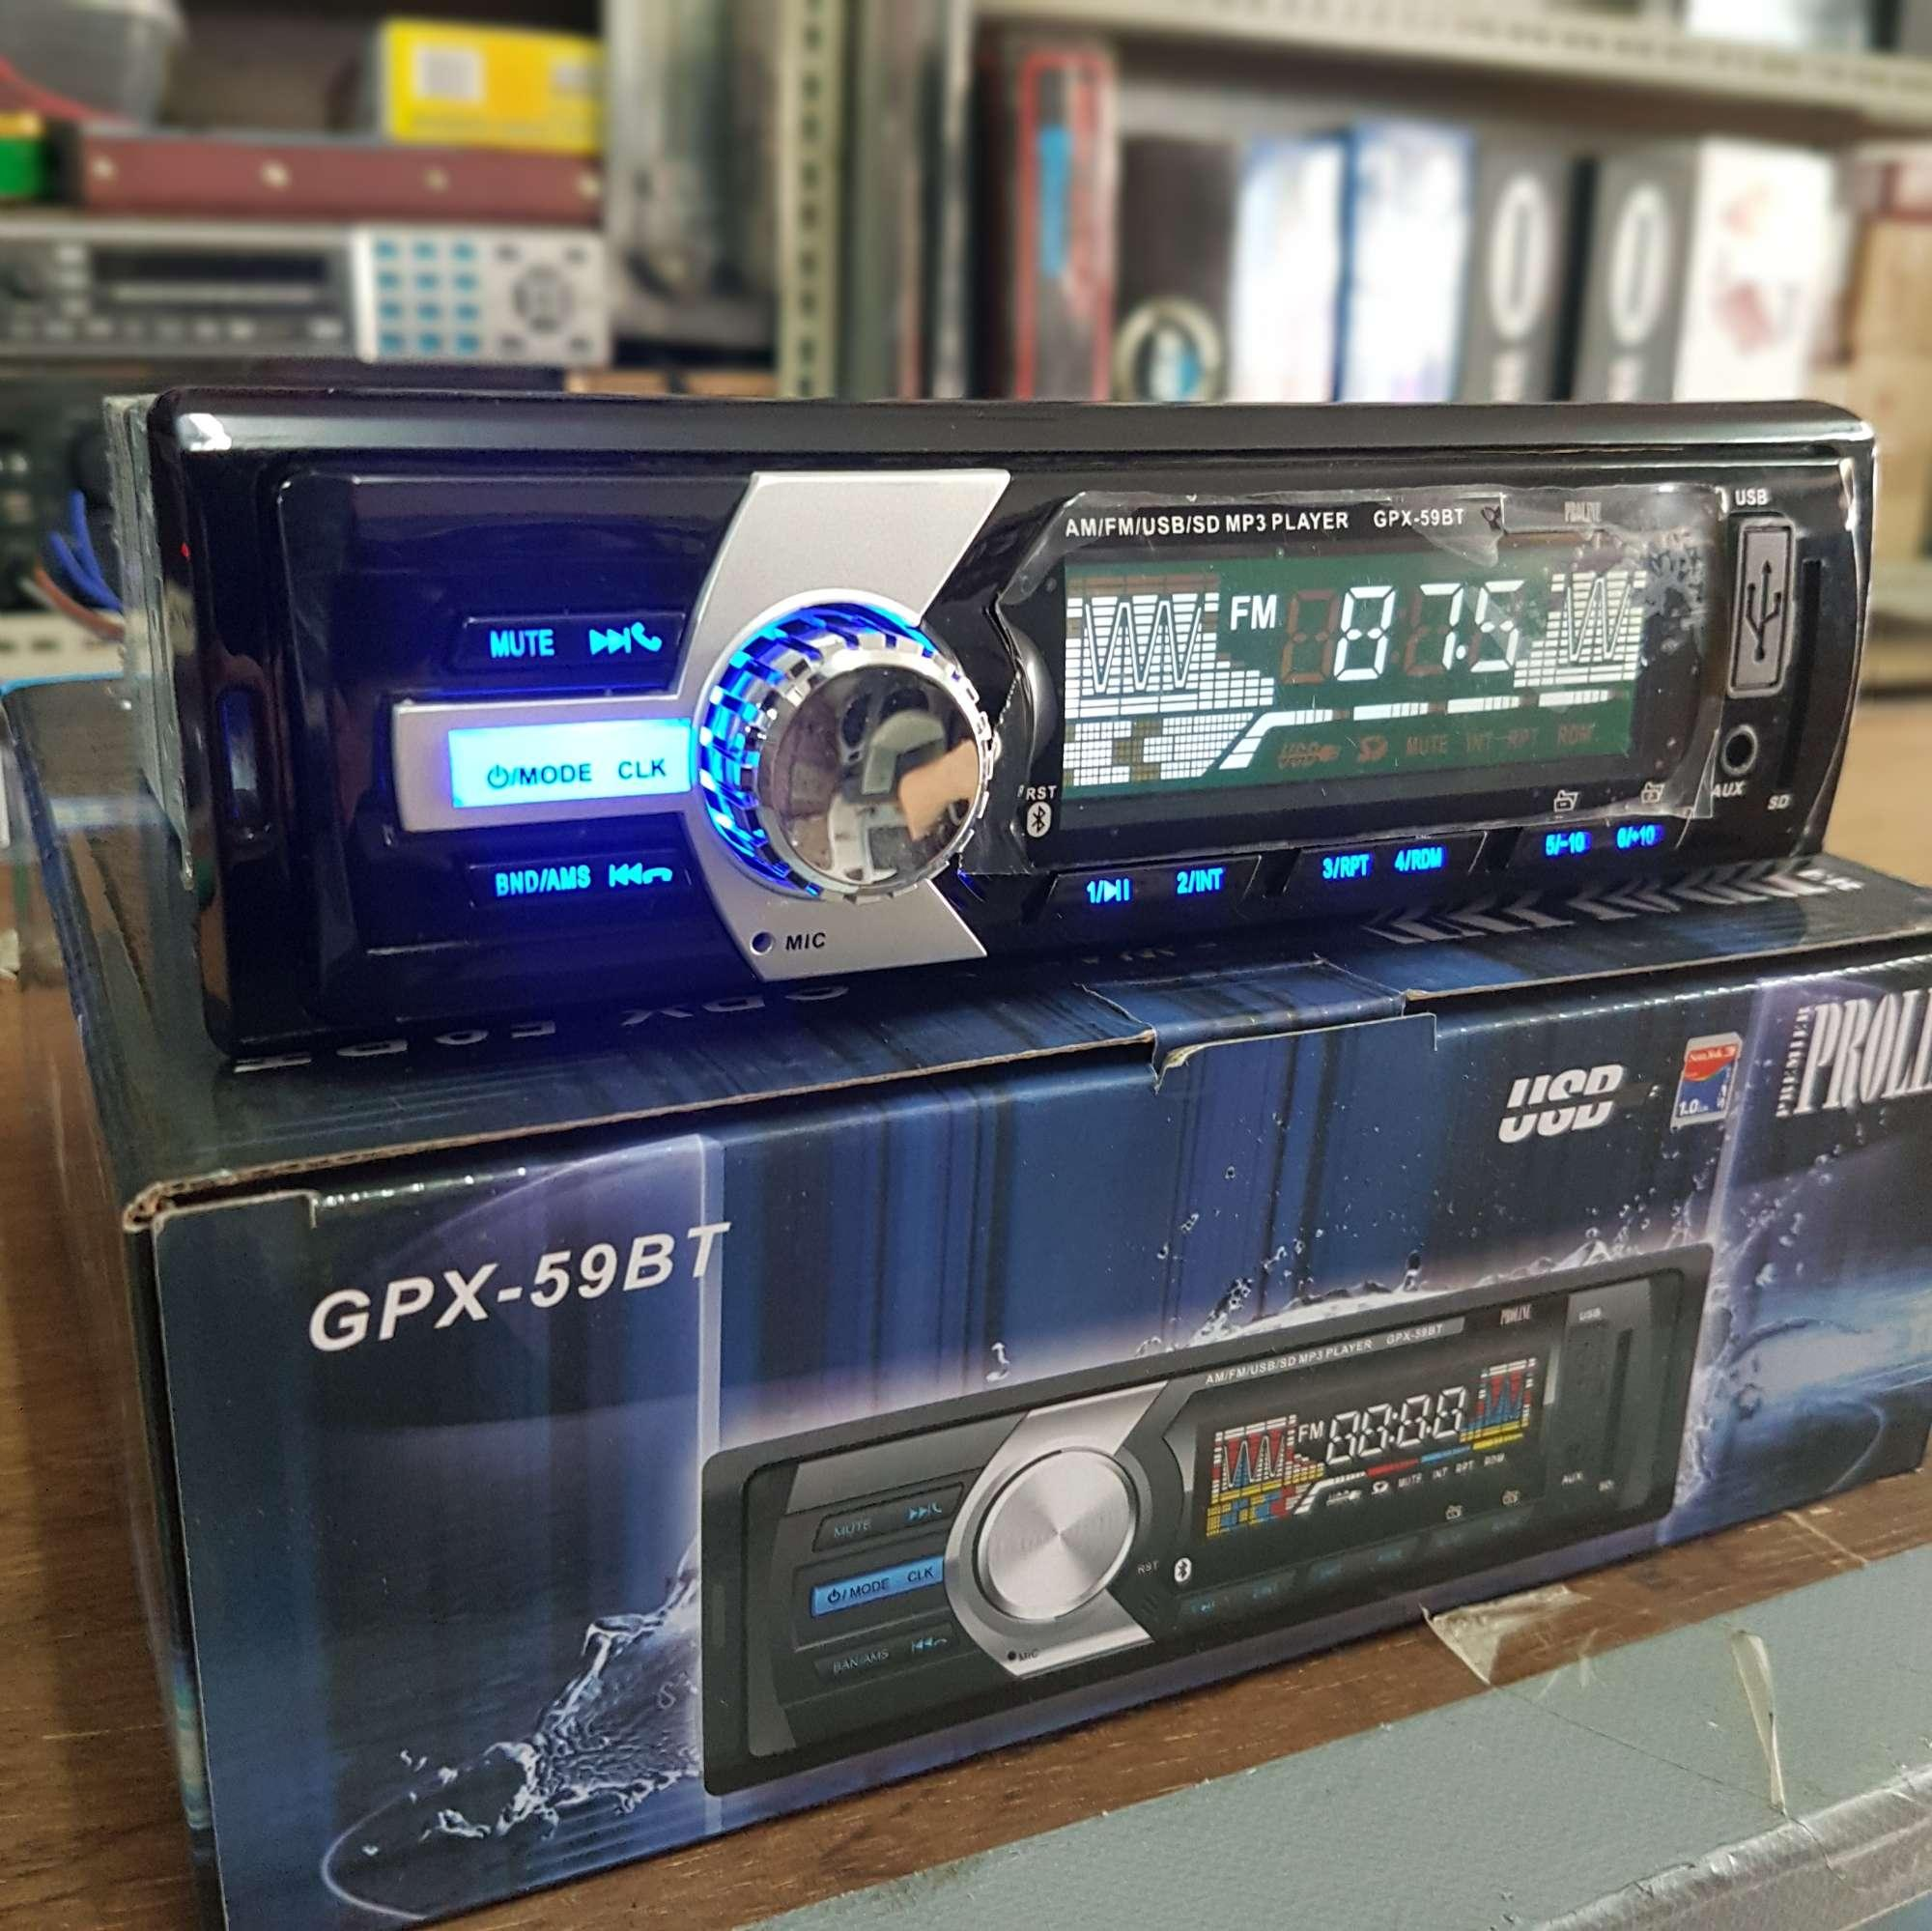 Car Stereo For Sale Cars Online Brands Prices Clarion Radio Audio On Panasonic Wiring Harness Proline Gpx 59bt Receiver W Bluetooth